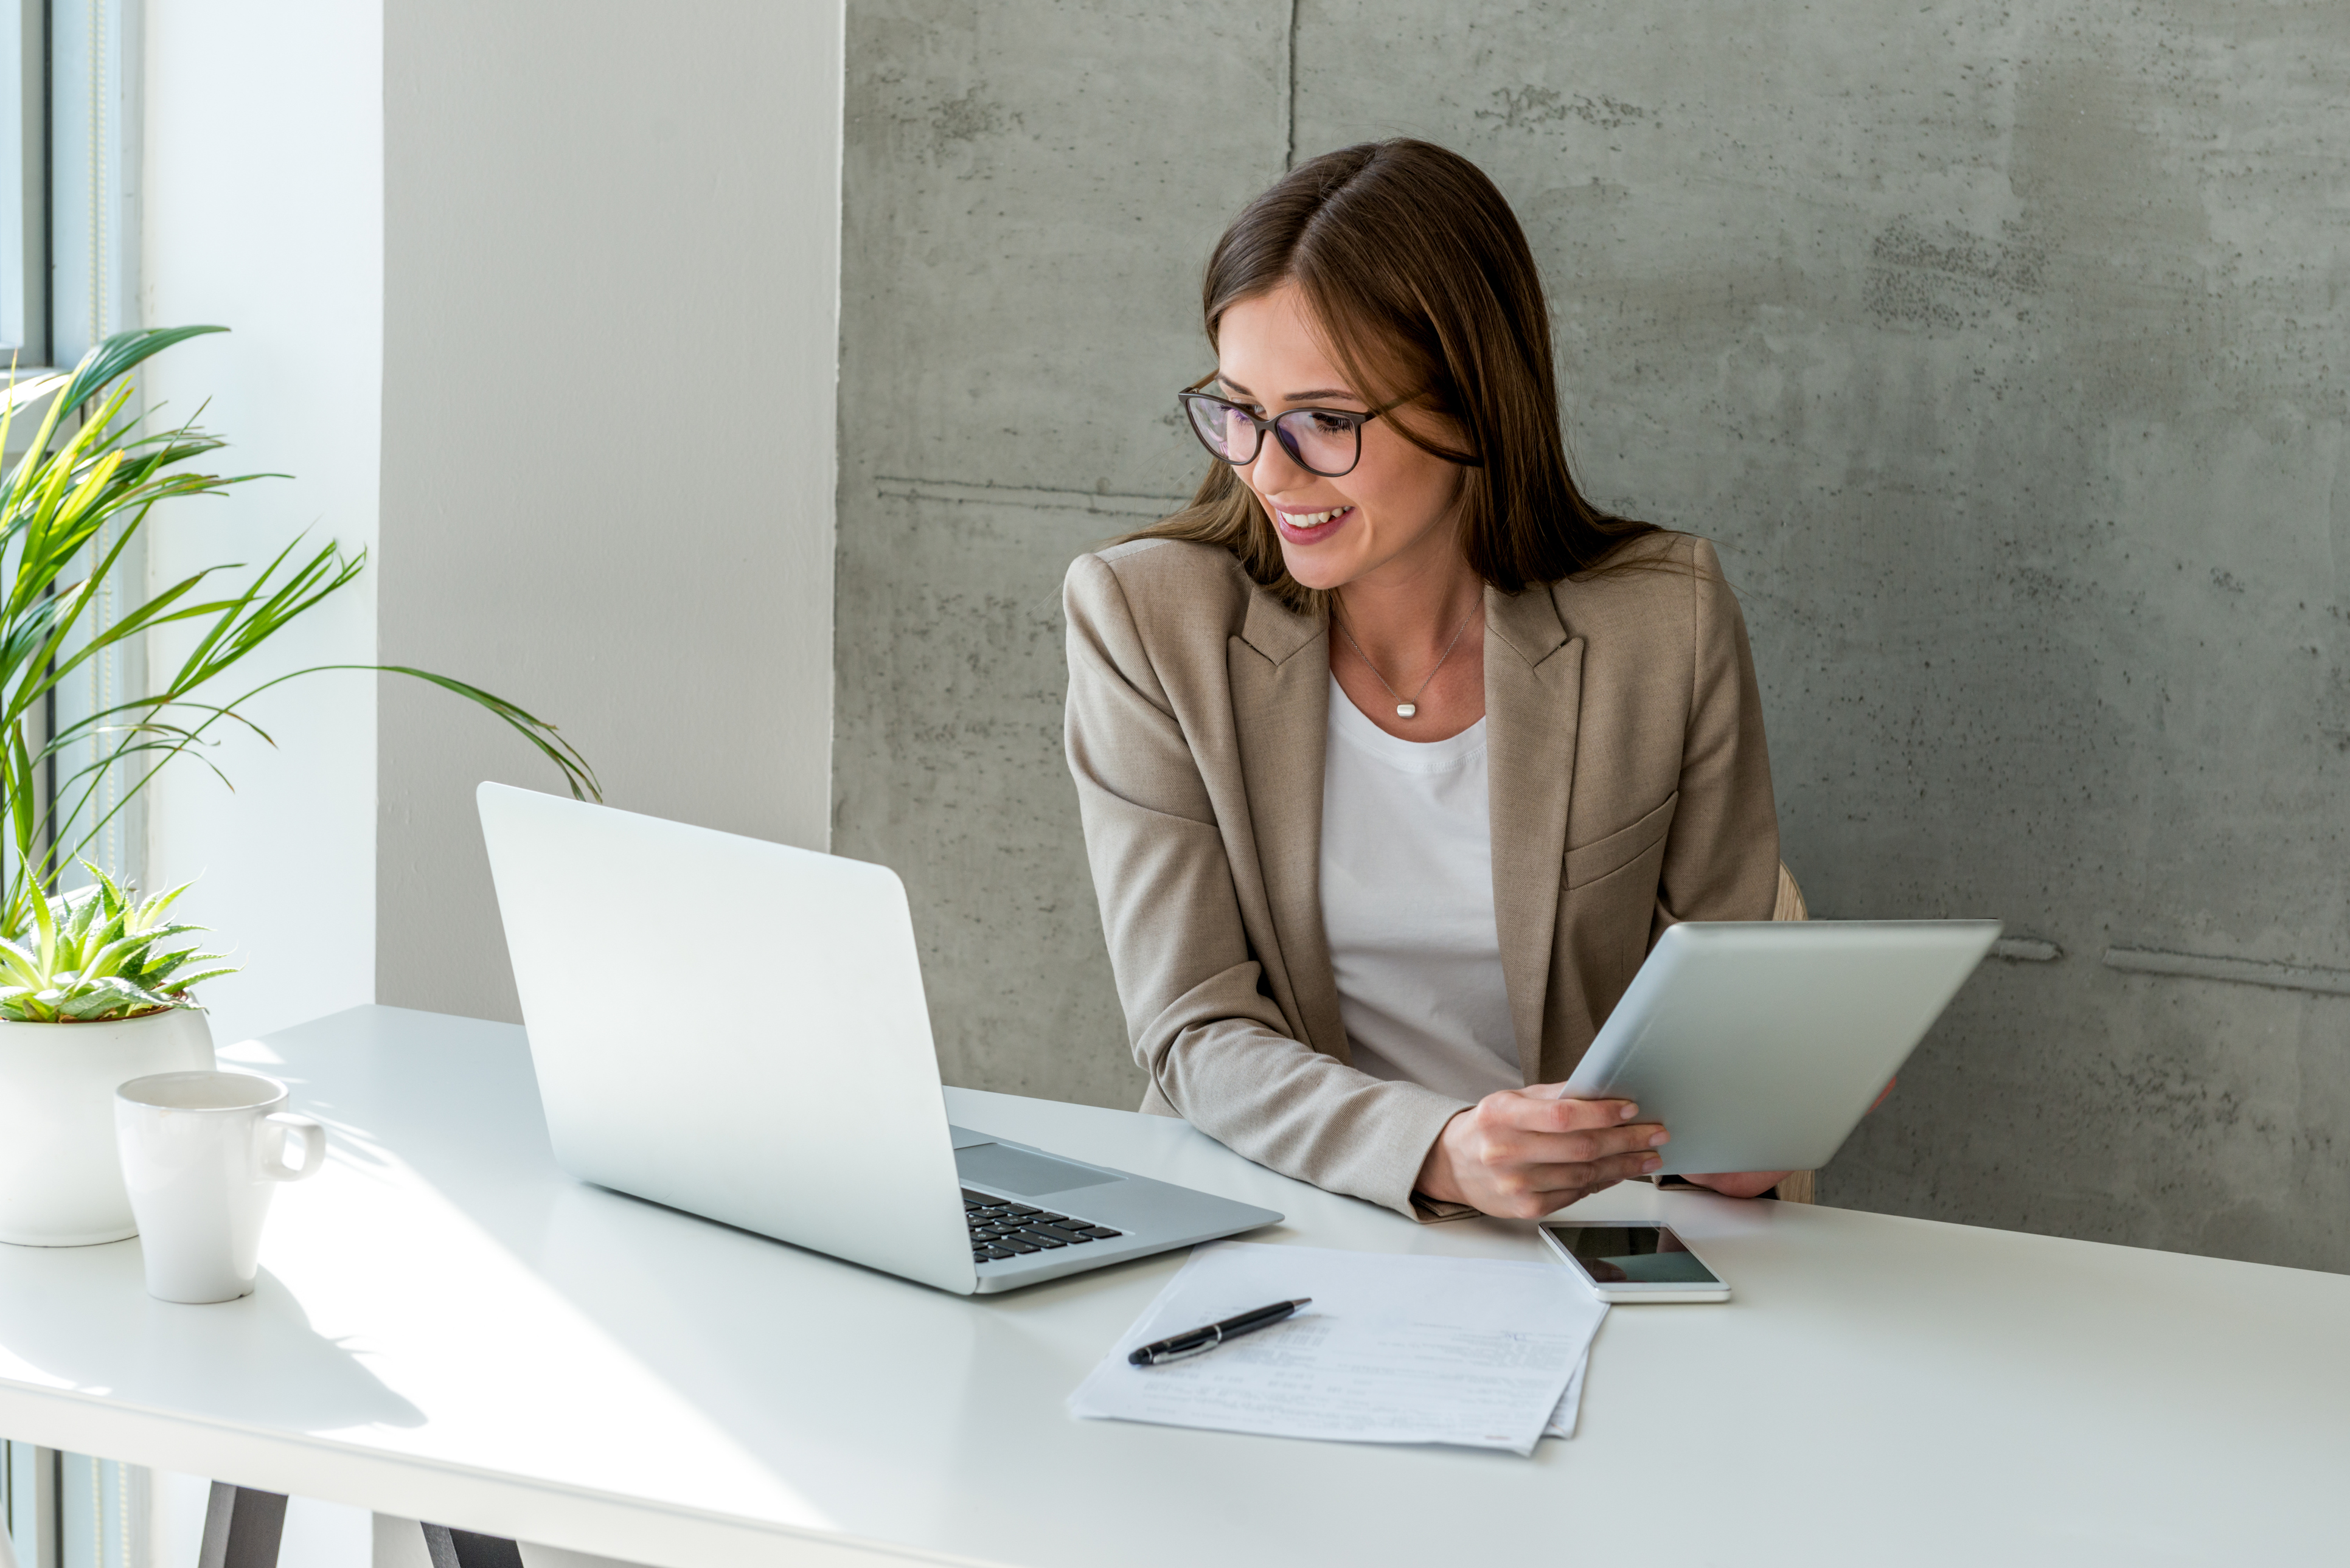 woman looking at data on laptop